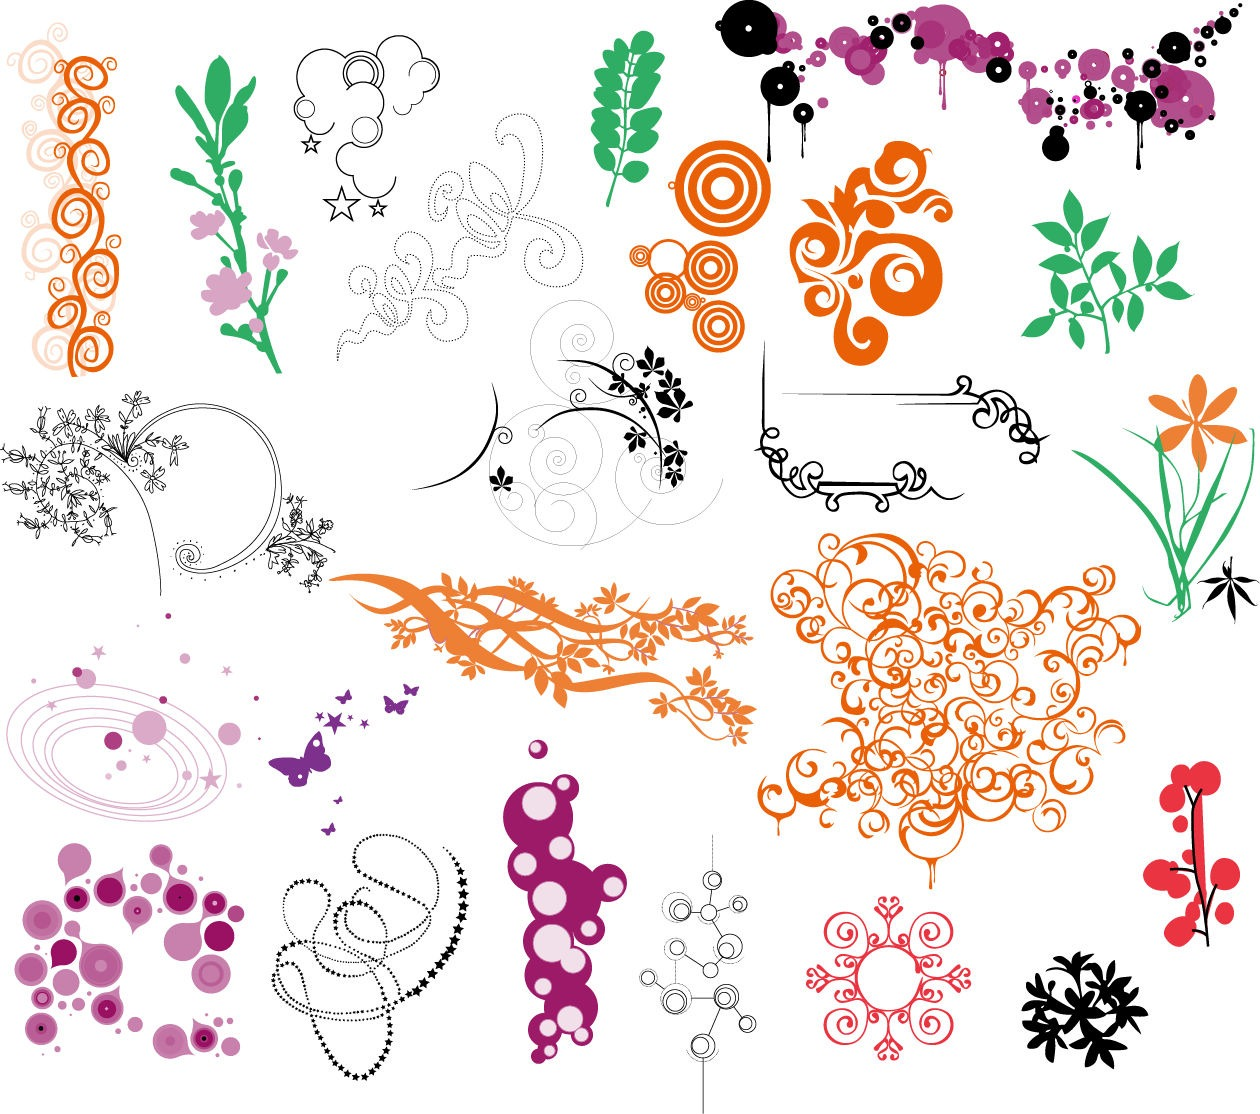 12 Vector Ornament Sets Images